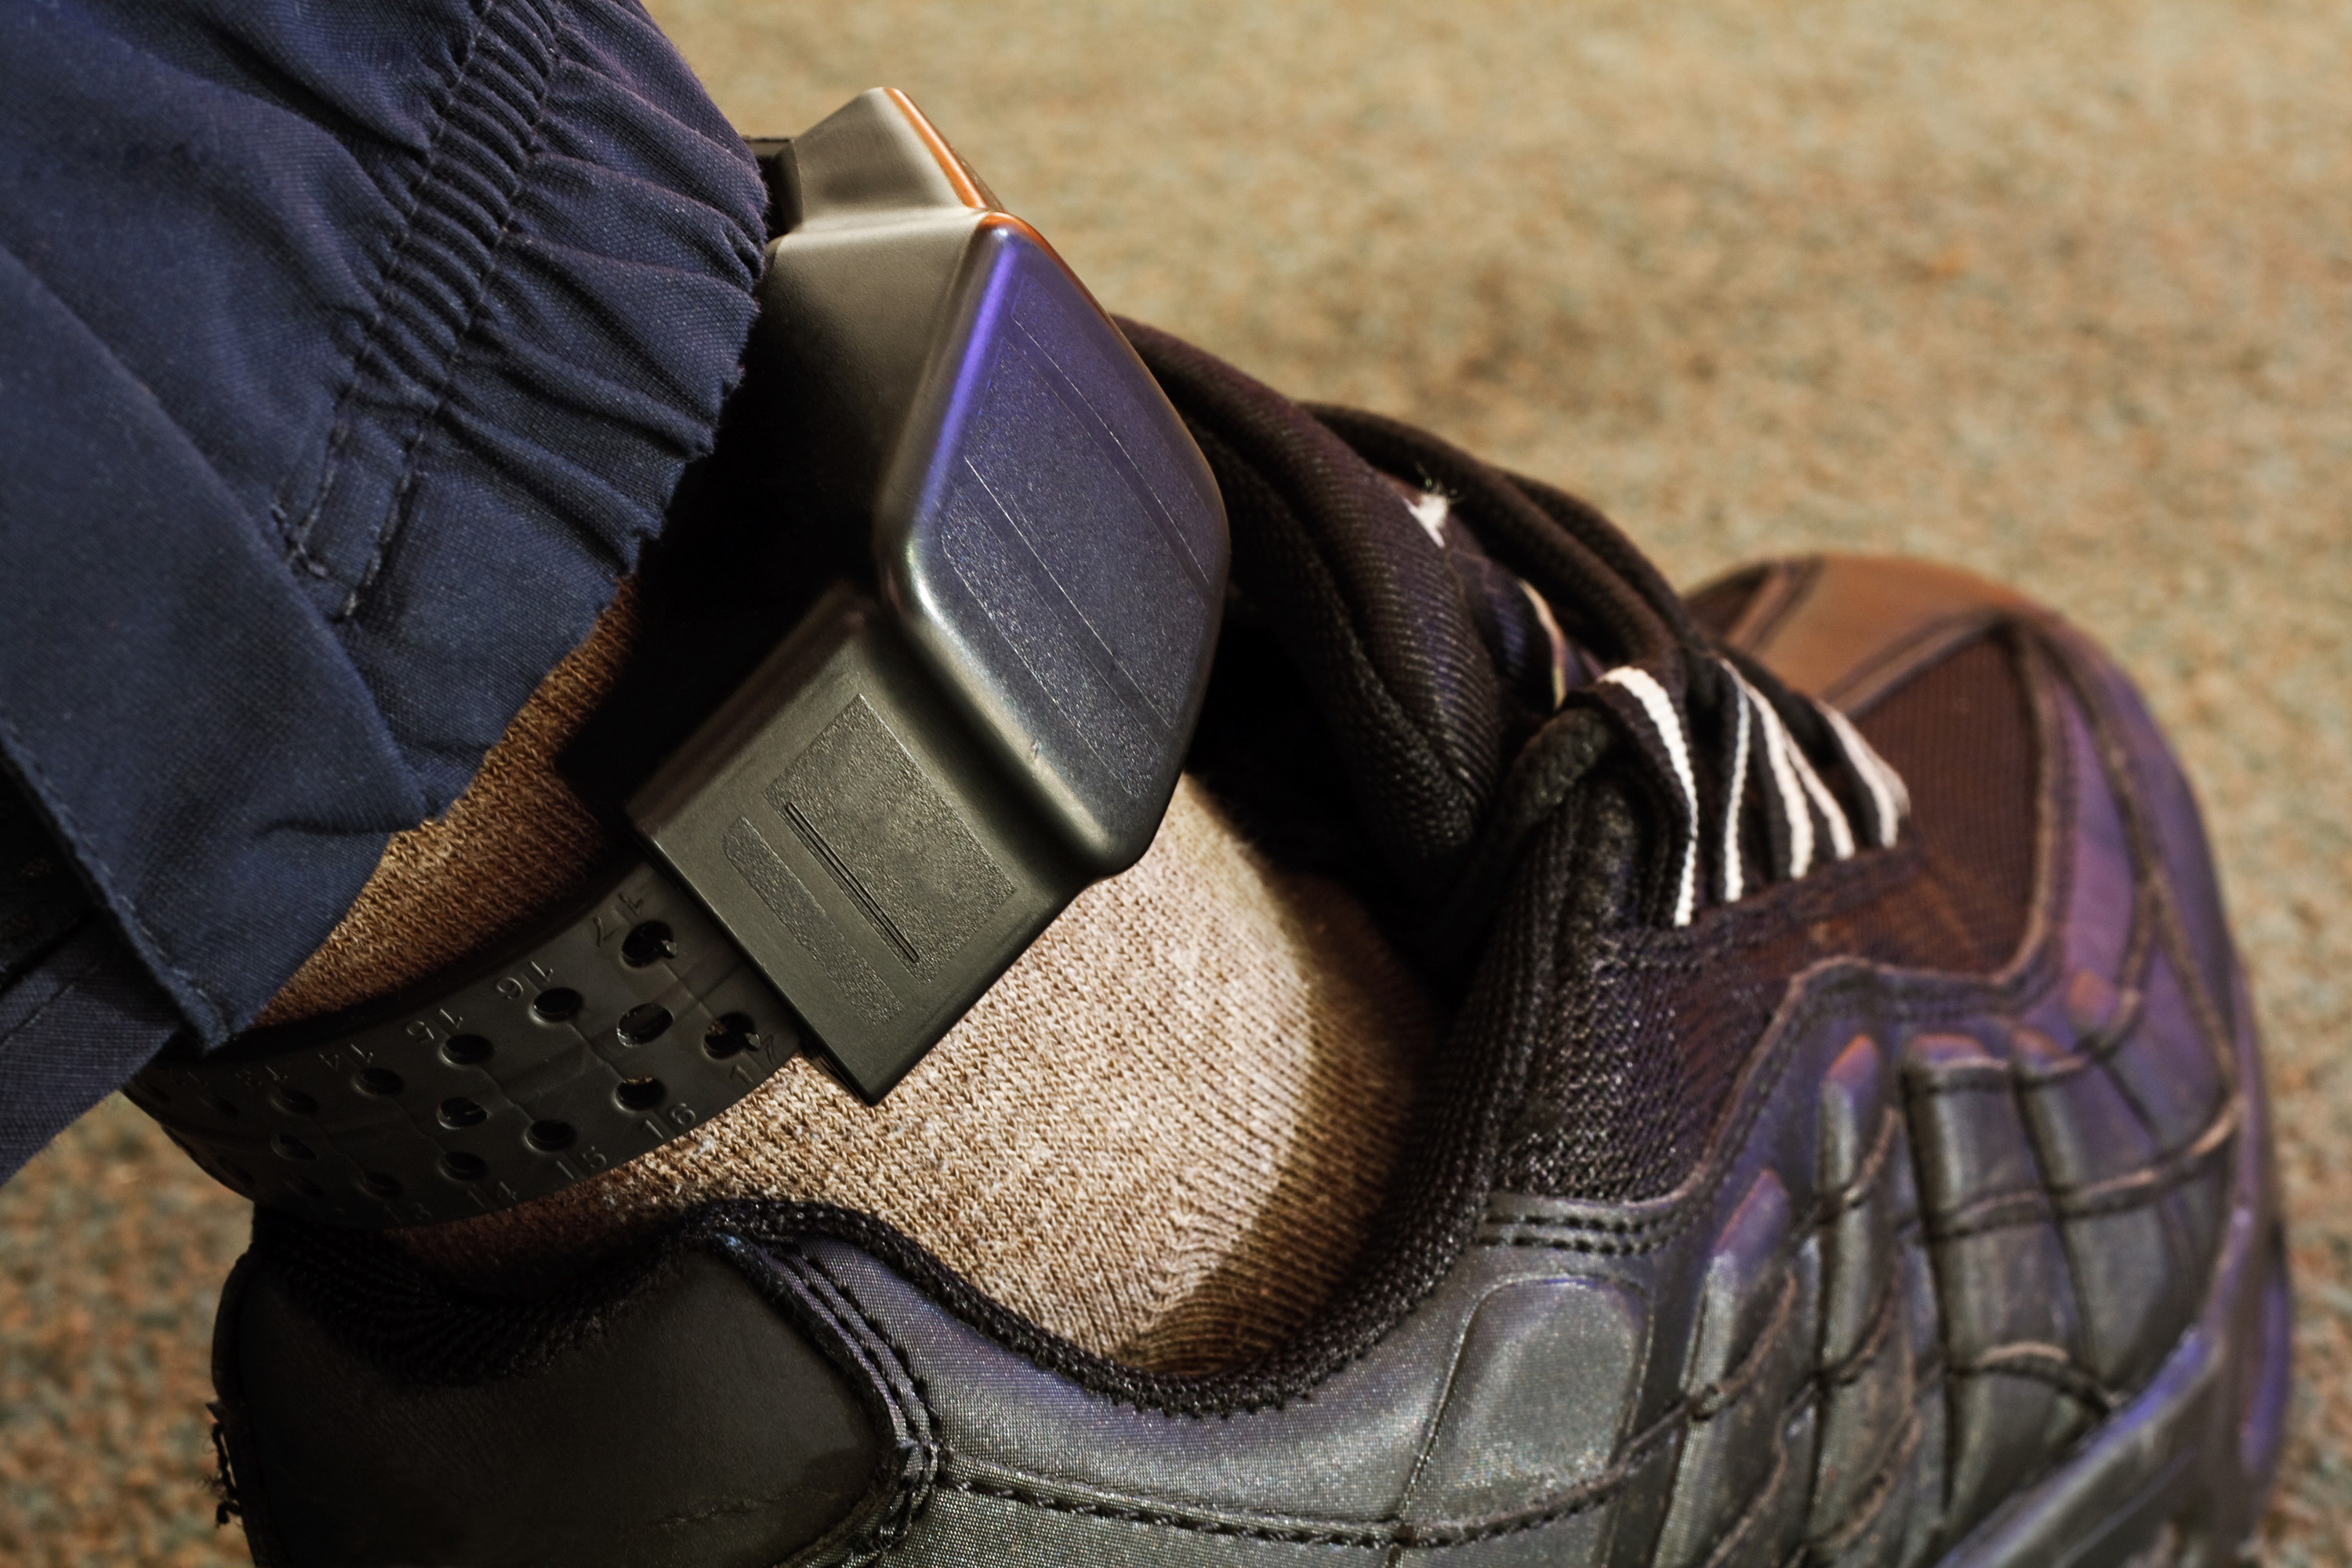 Monitoring bracelet is commonly used in probation